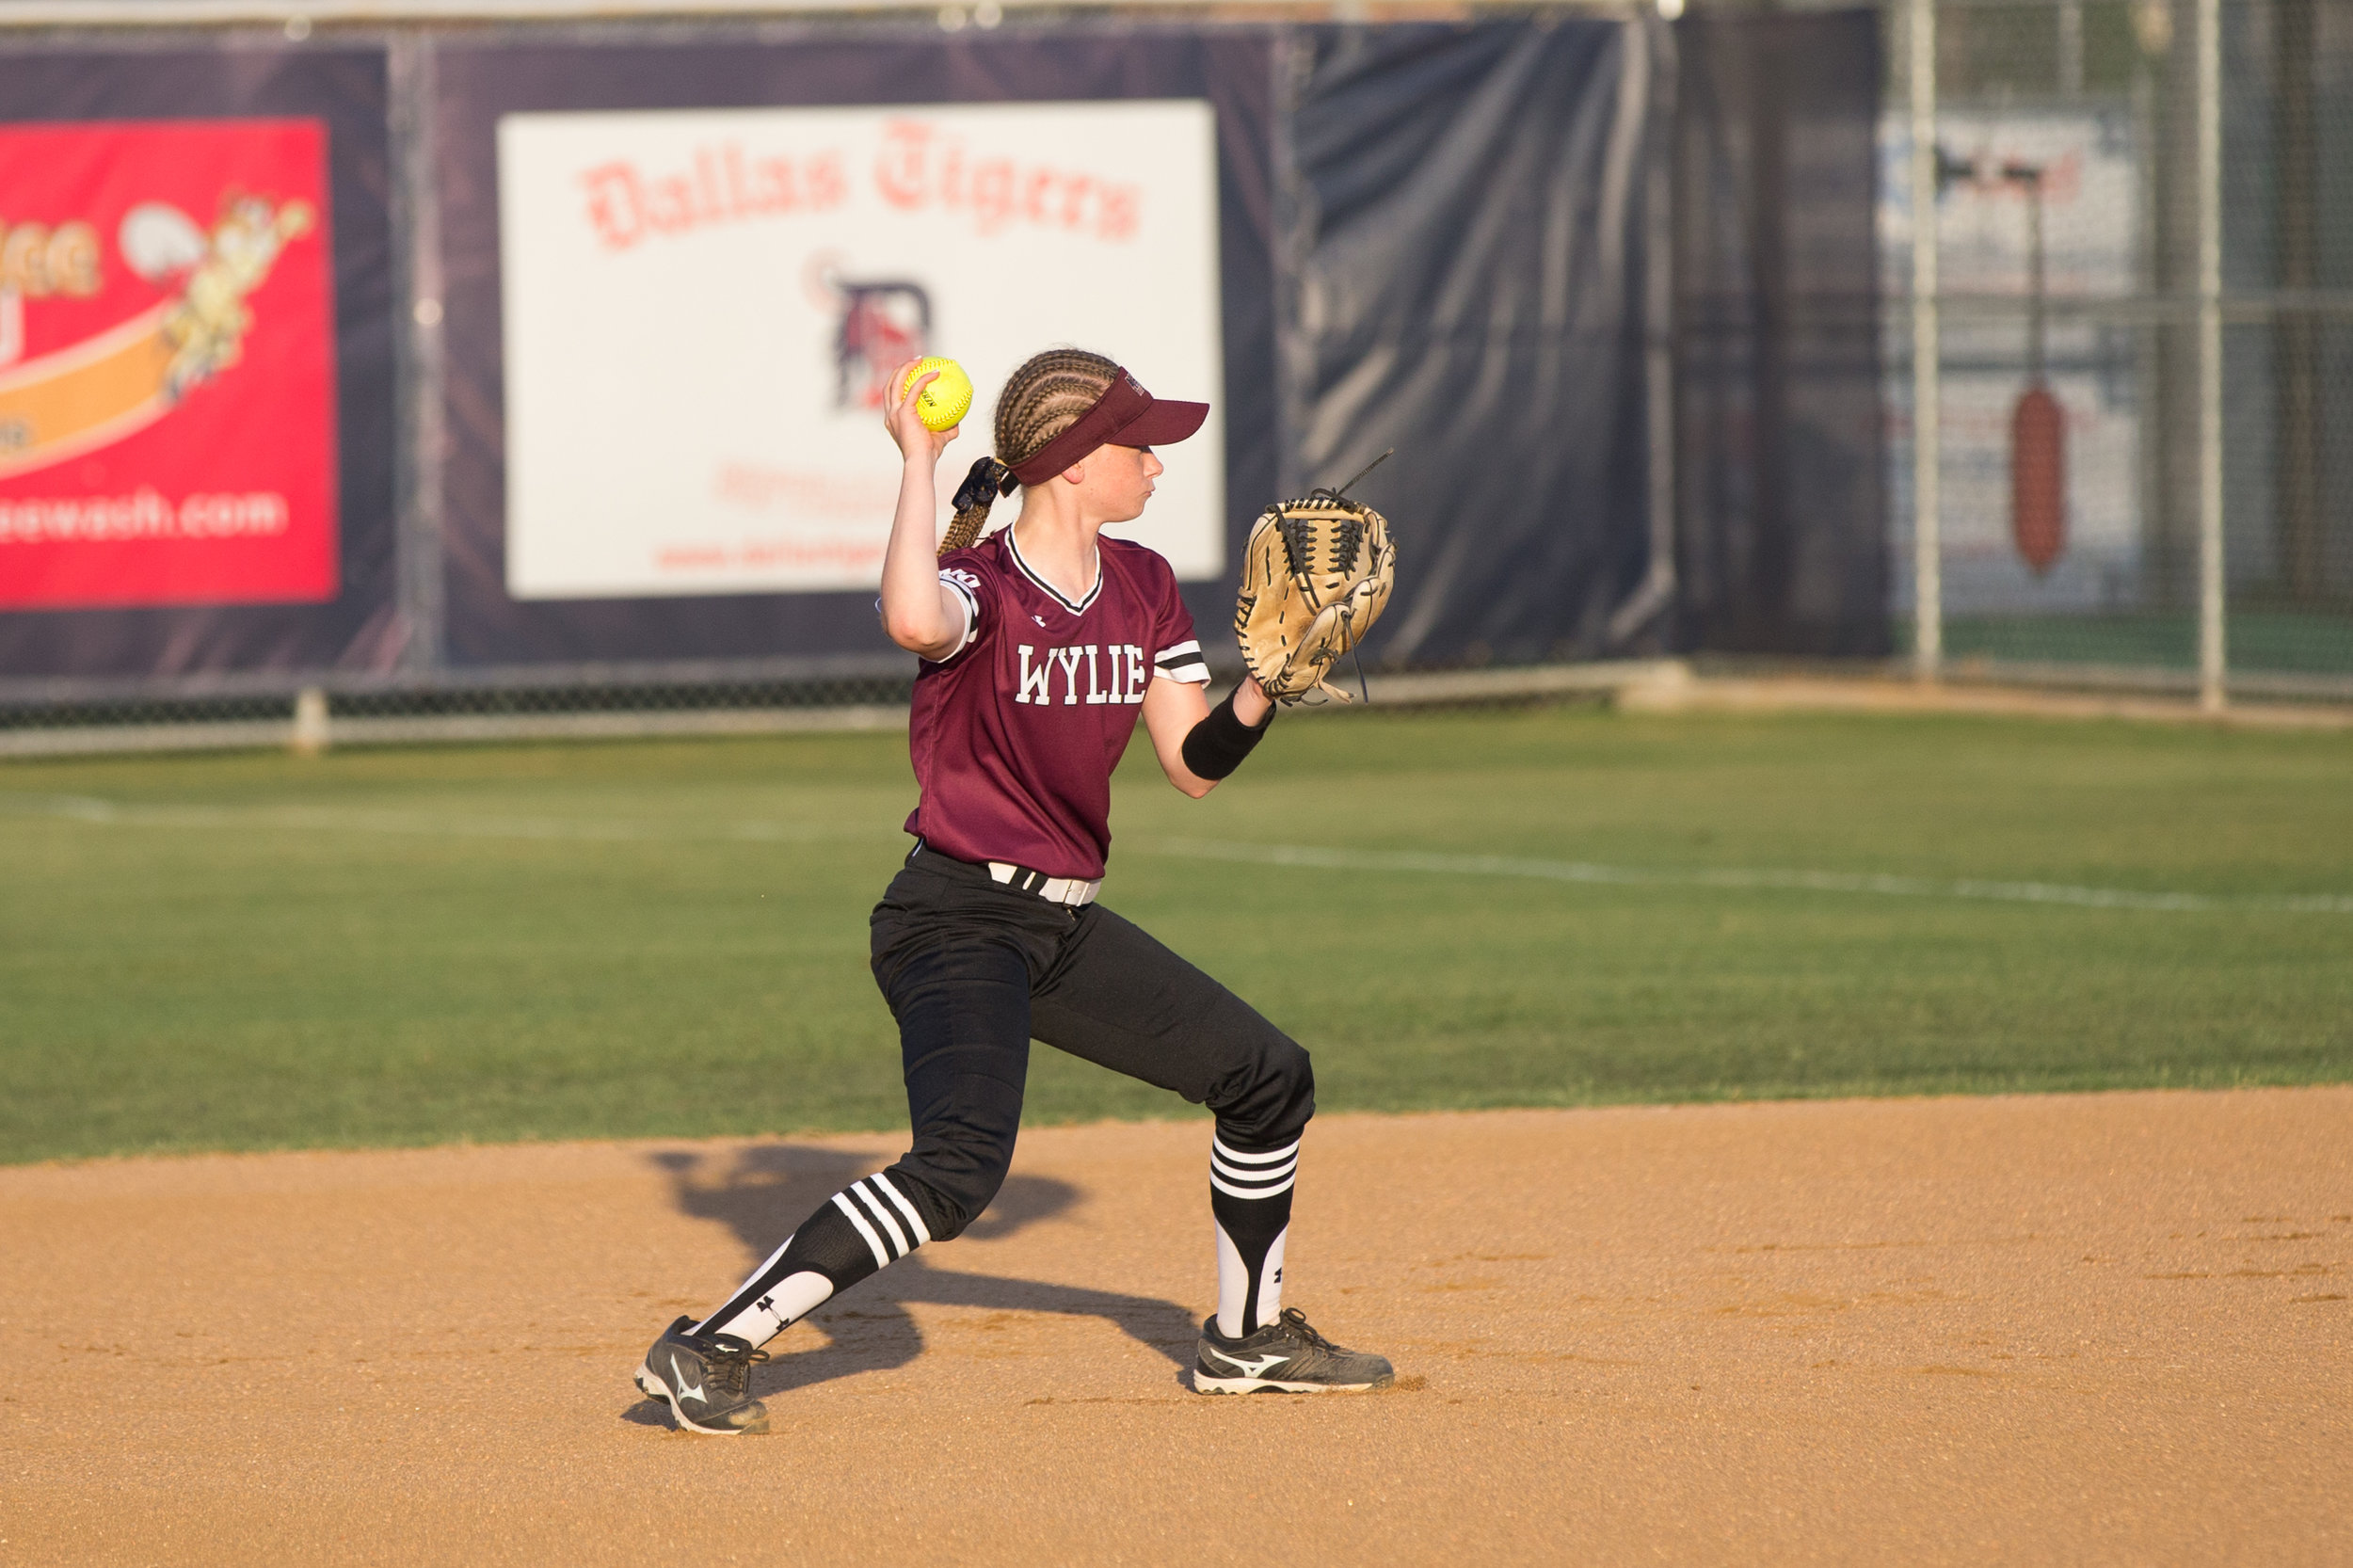 5_18 Wylie Softball-130.jpg